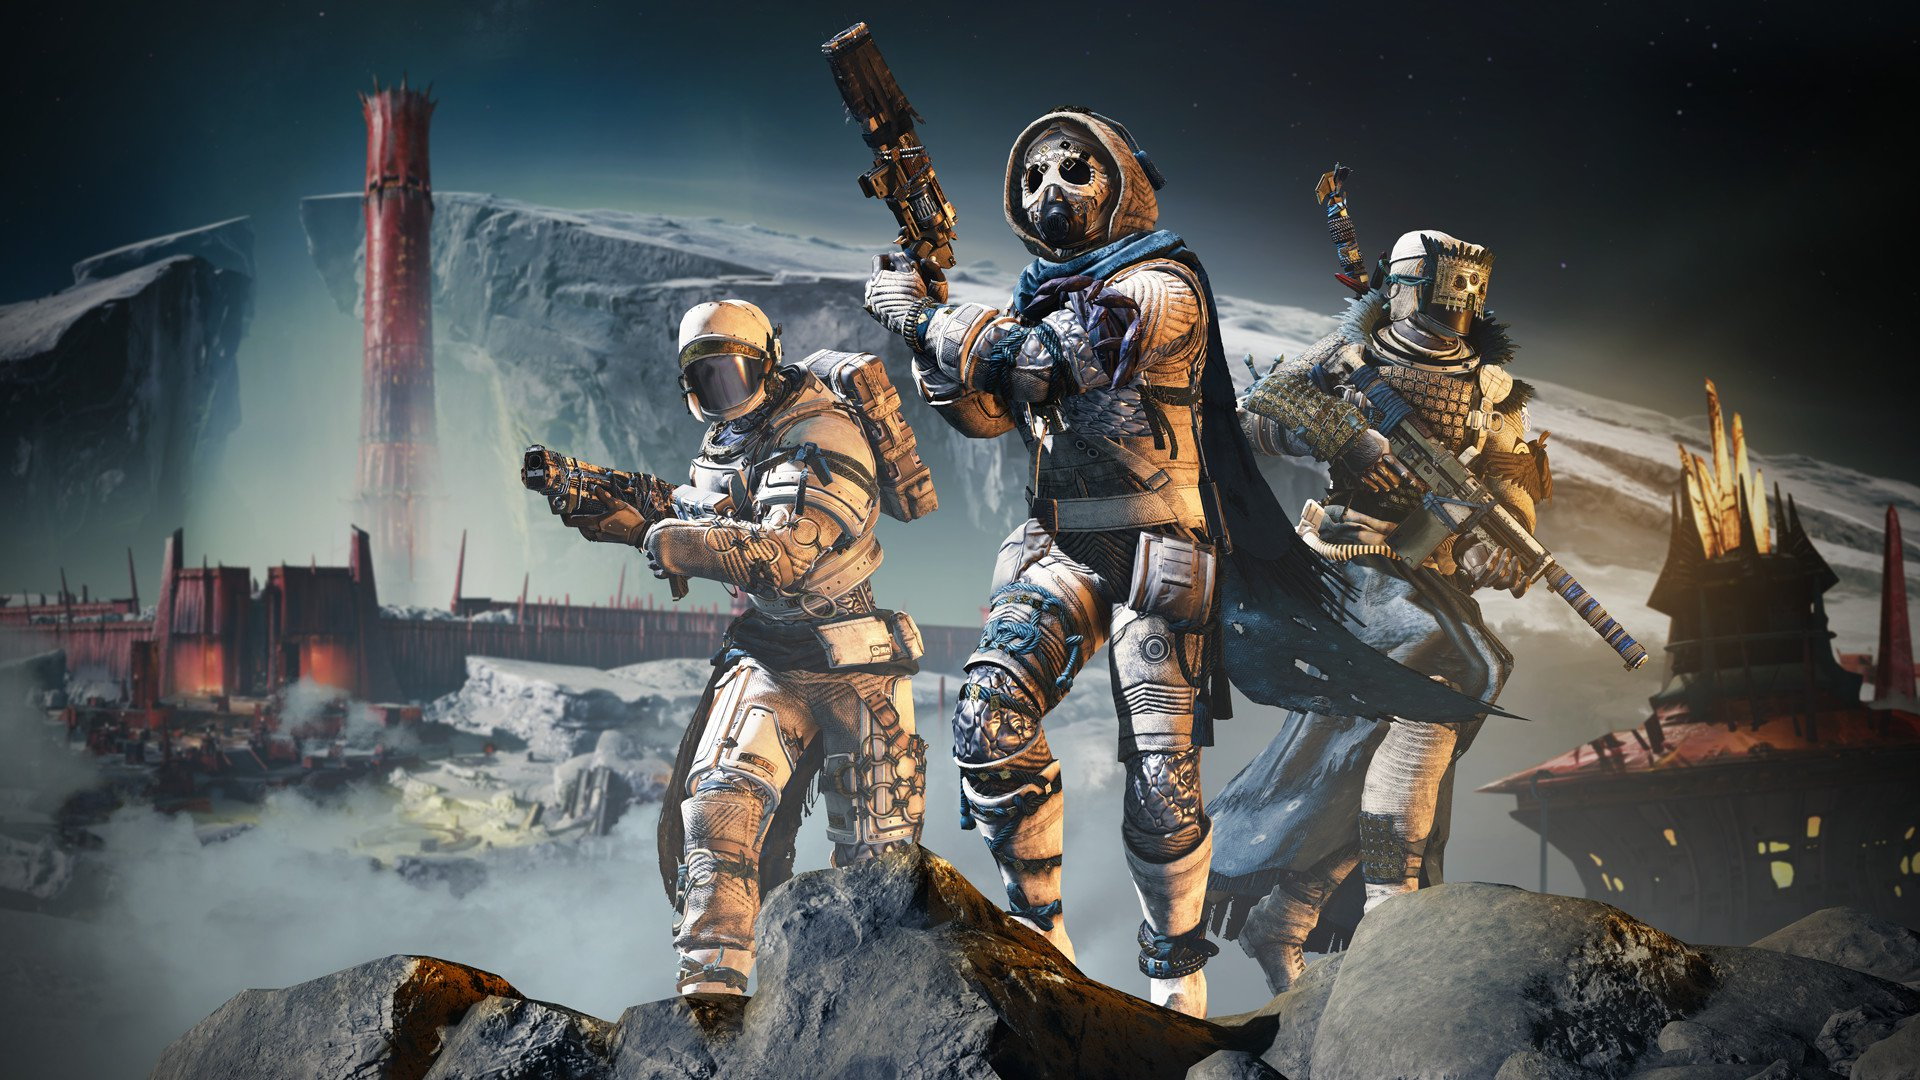 destiny-is-the-second-best-selling-fps-franchise-in-us-dollar-sales